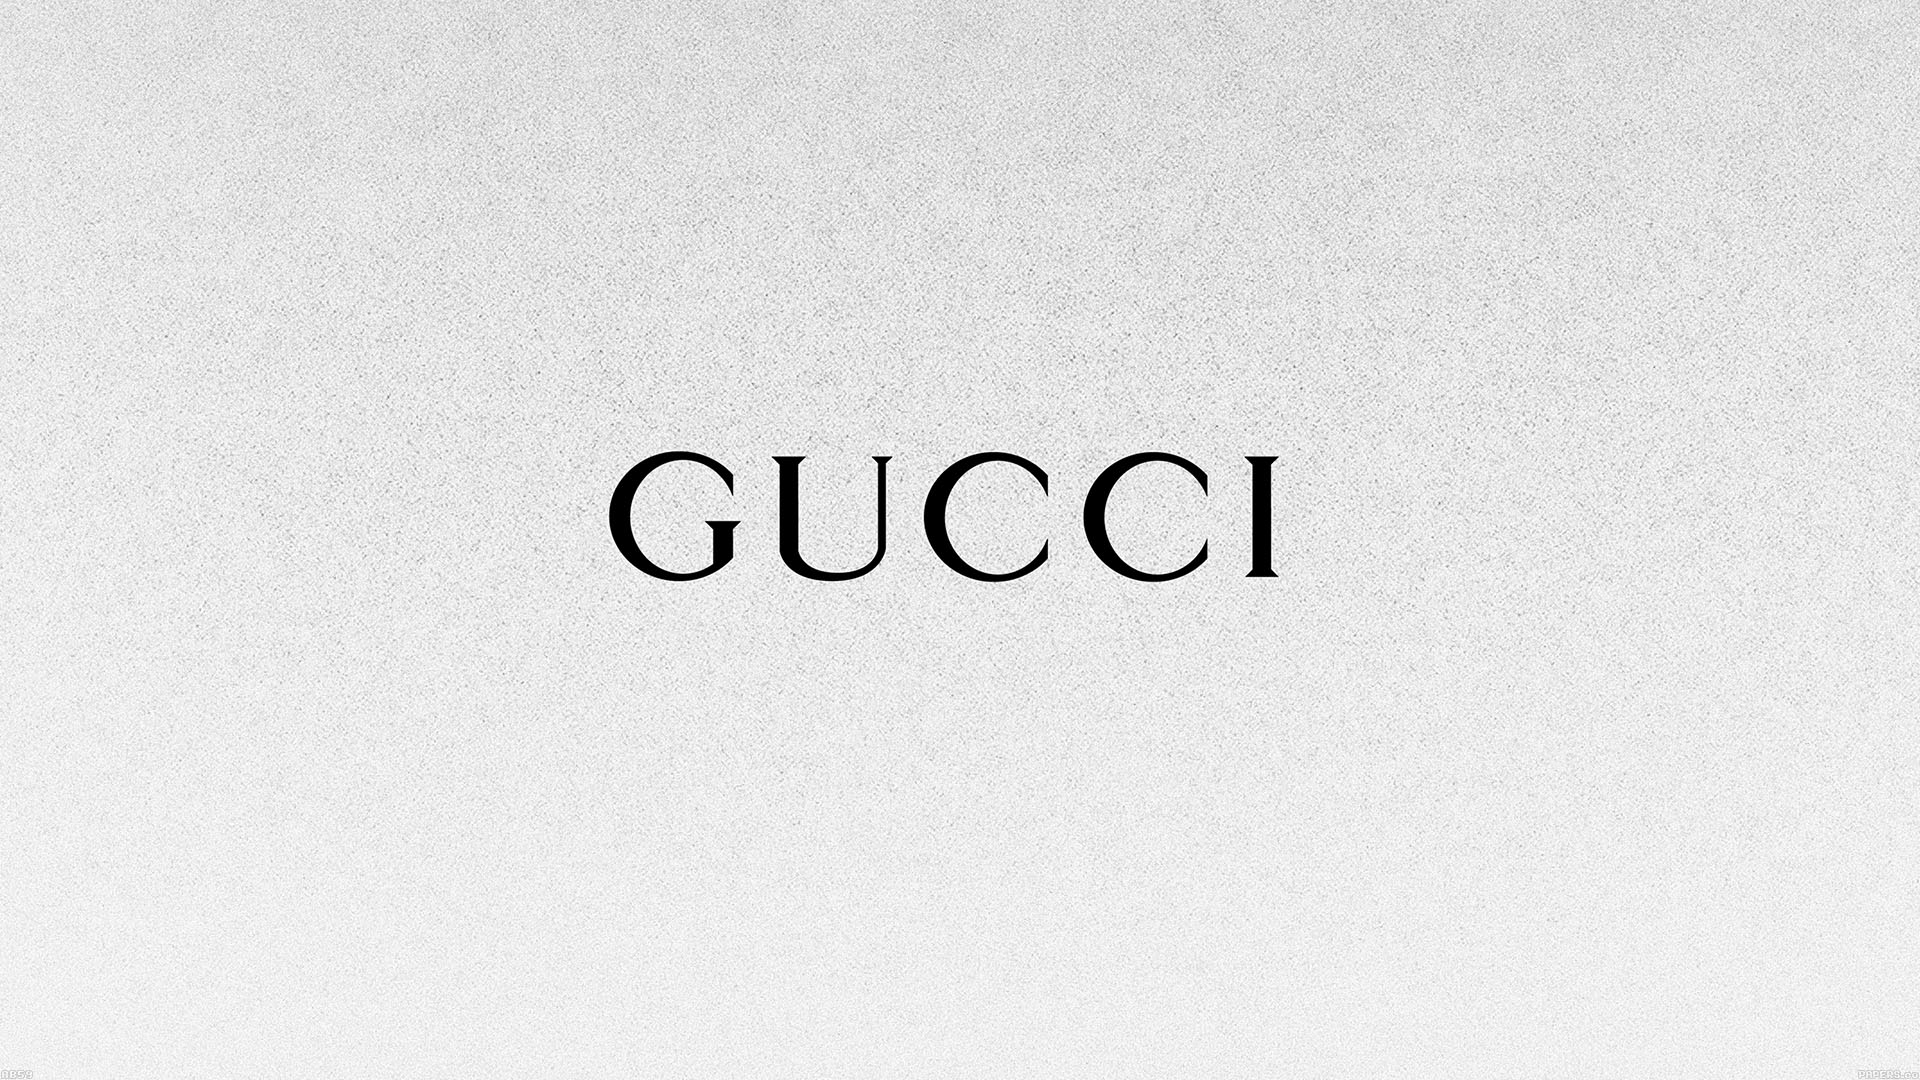 https://trusishki24.ru/images/upload/papers.co-ab59-wallpaper-gucci-white-logo-25-wallpaper.jpg